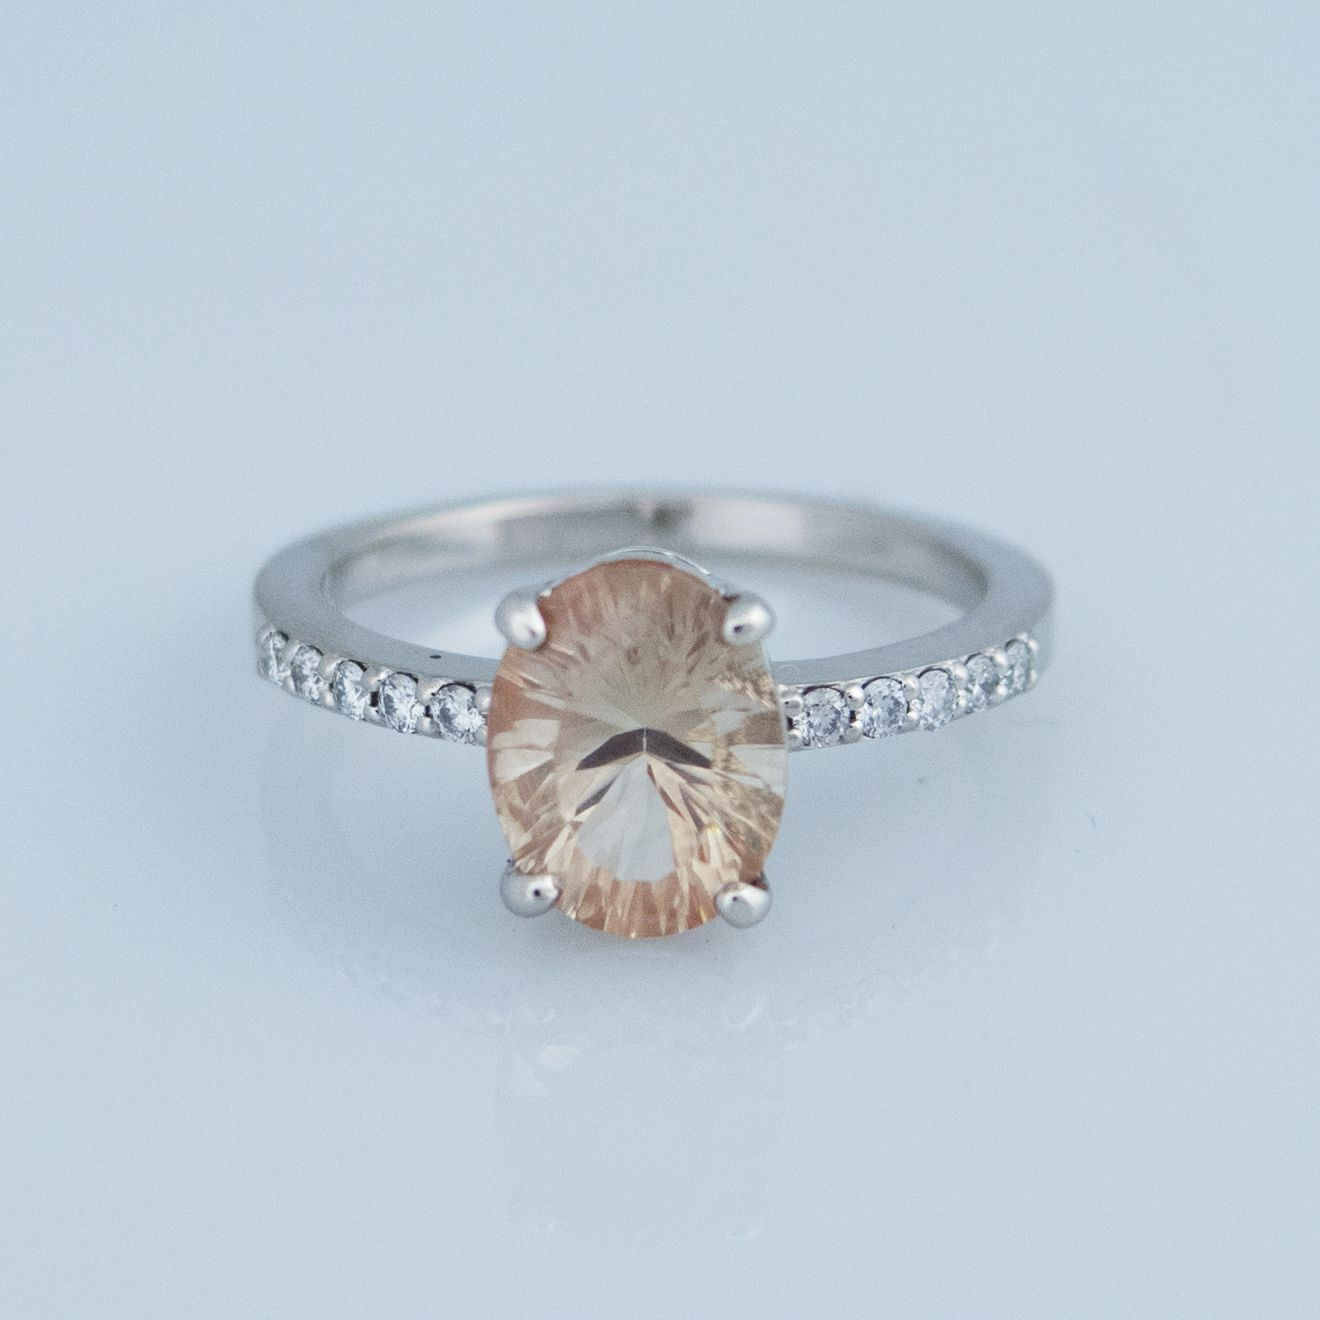 diamond engagement and skemp products stone peggy rings tentacle jewelry strtent ring sun sunstone